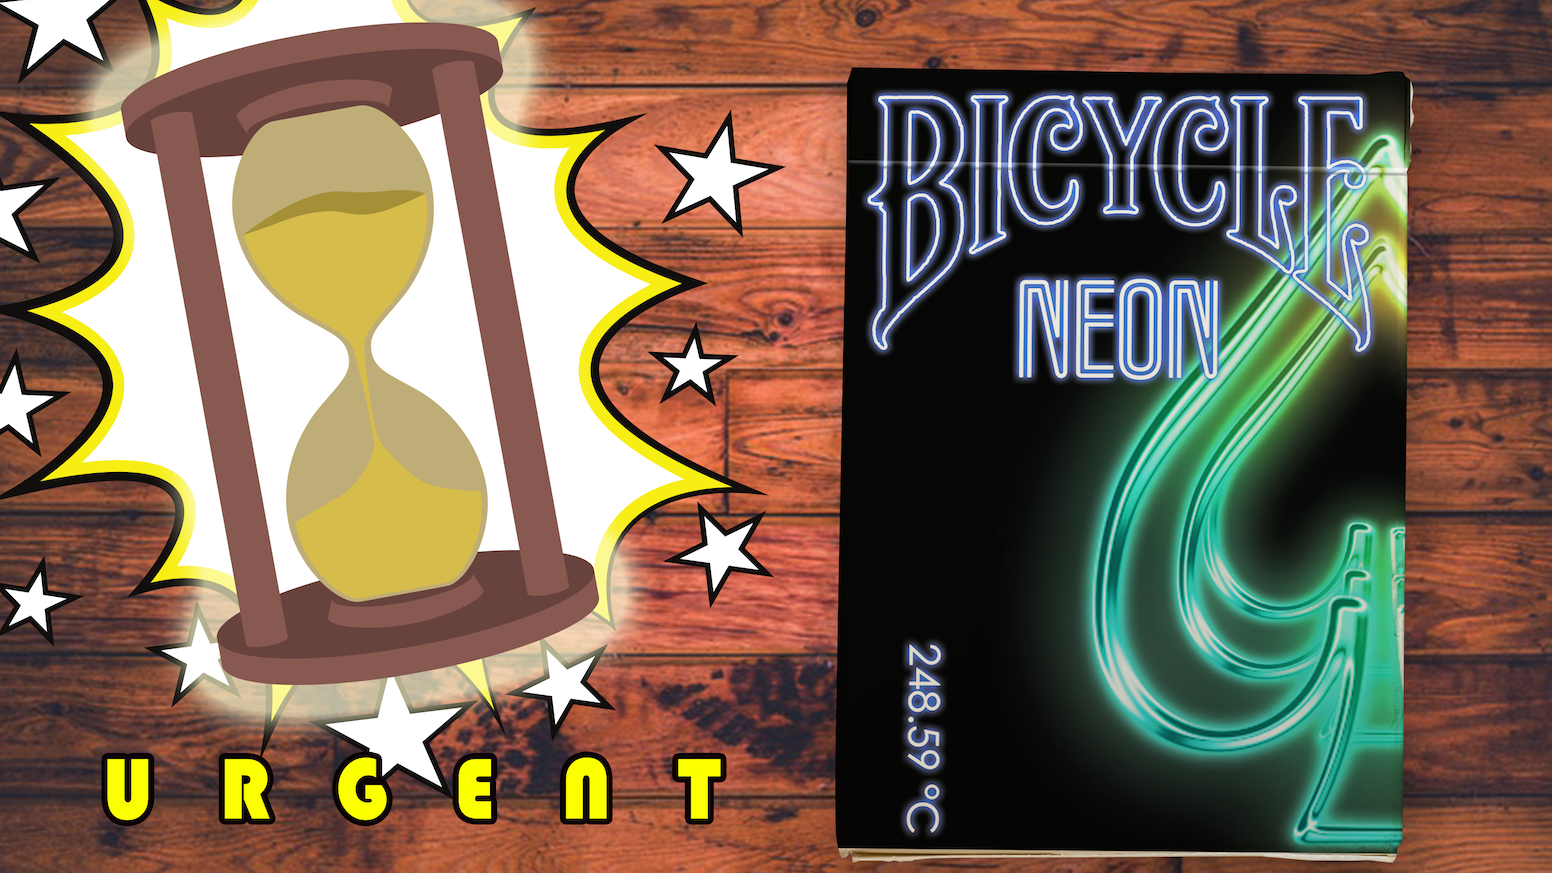 Bicycle Neon Playing Cards - Save the night of old Hong Kong